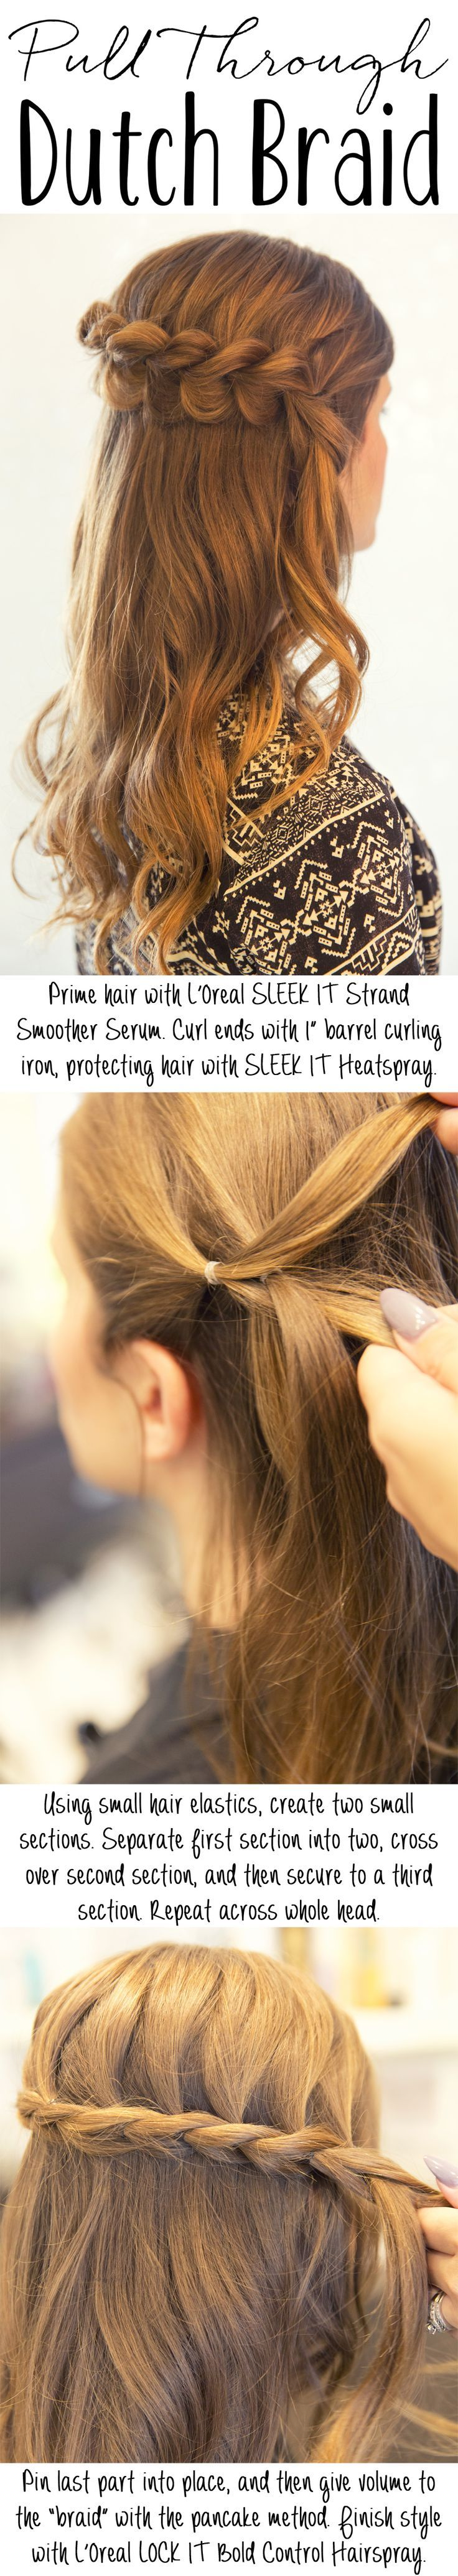 Pull through dutch braid hair tutorial hairstyles pinterest